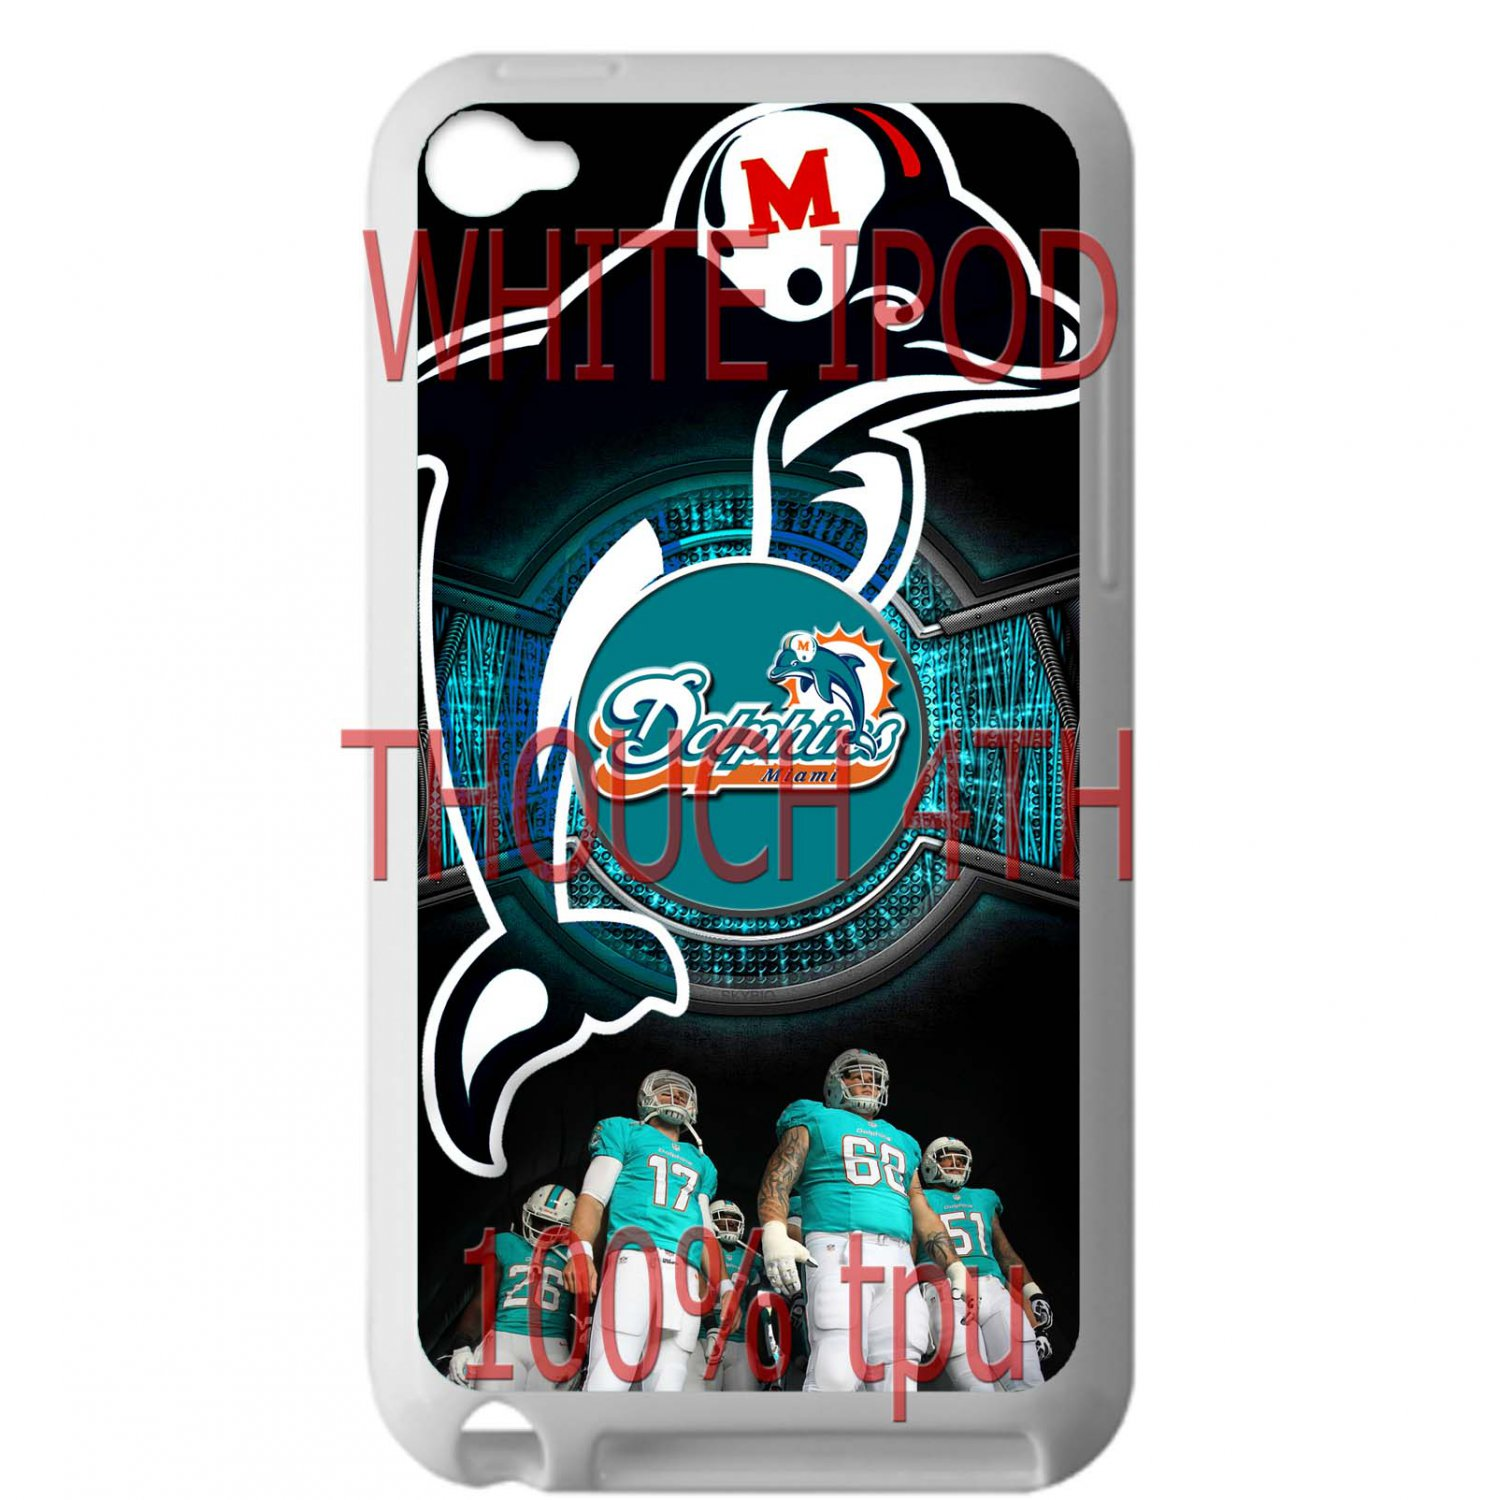 miami dolphins ryan tannehill fit for ipod touch 4 white case cover